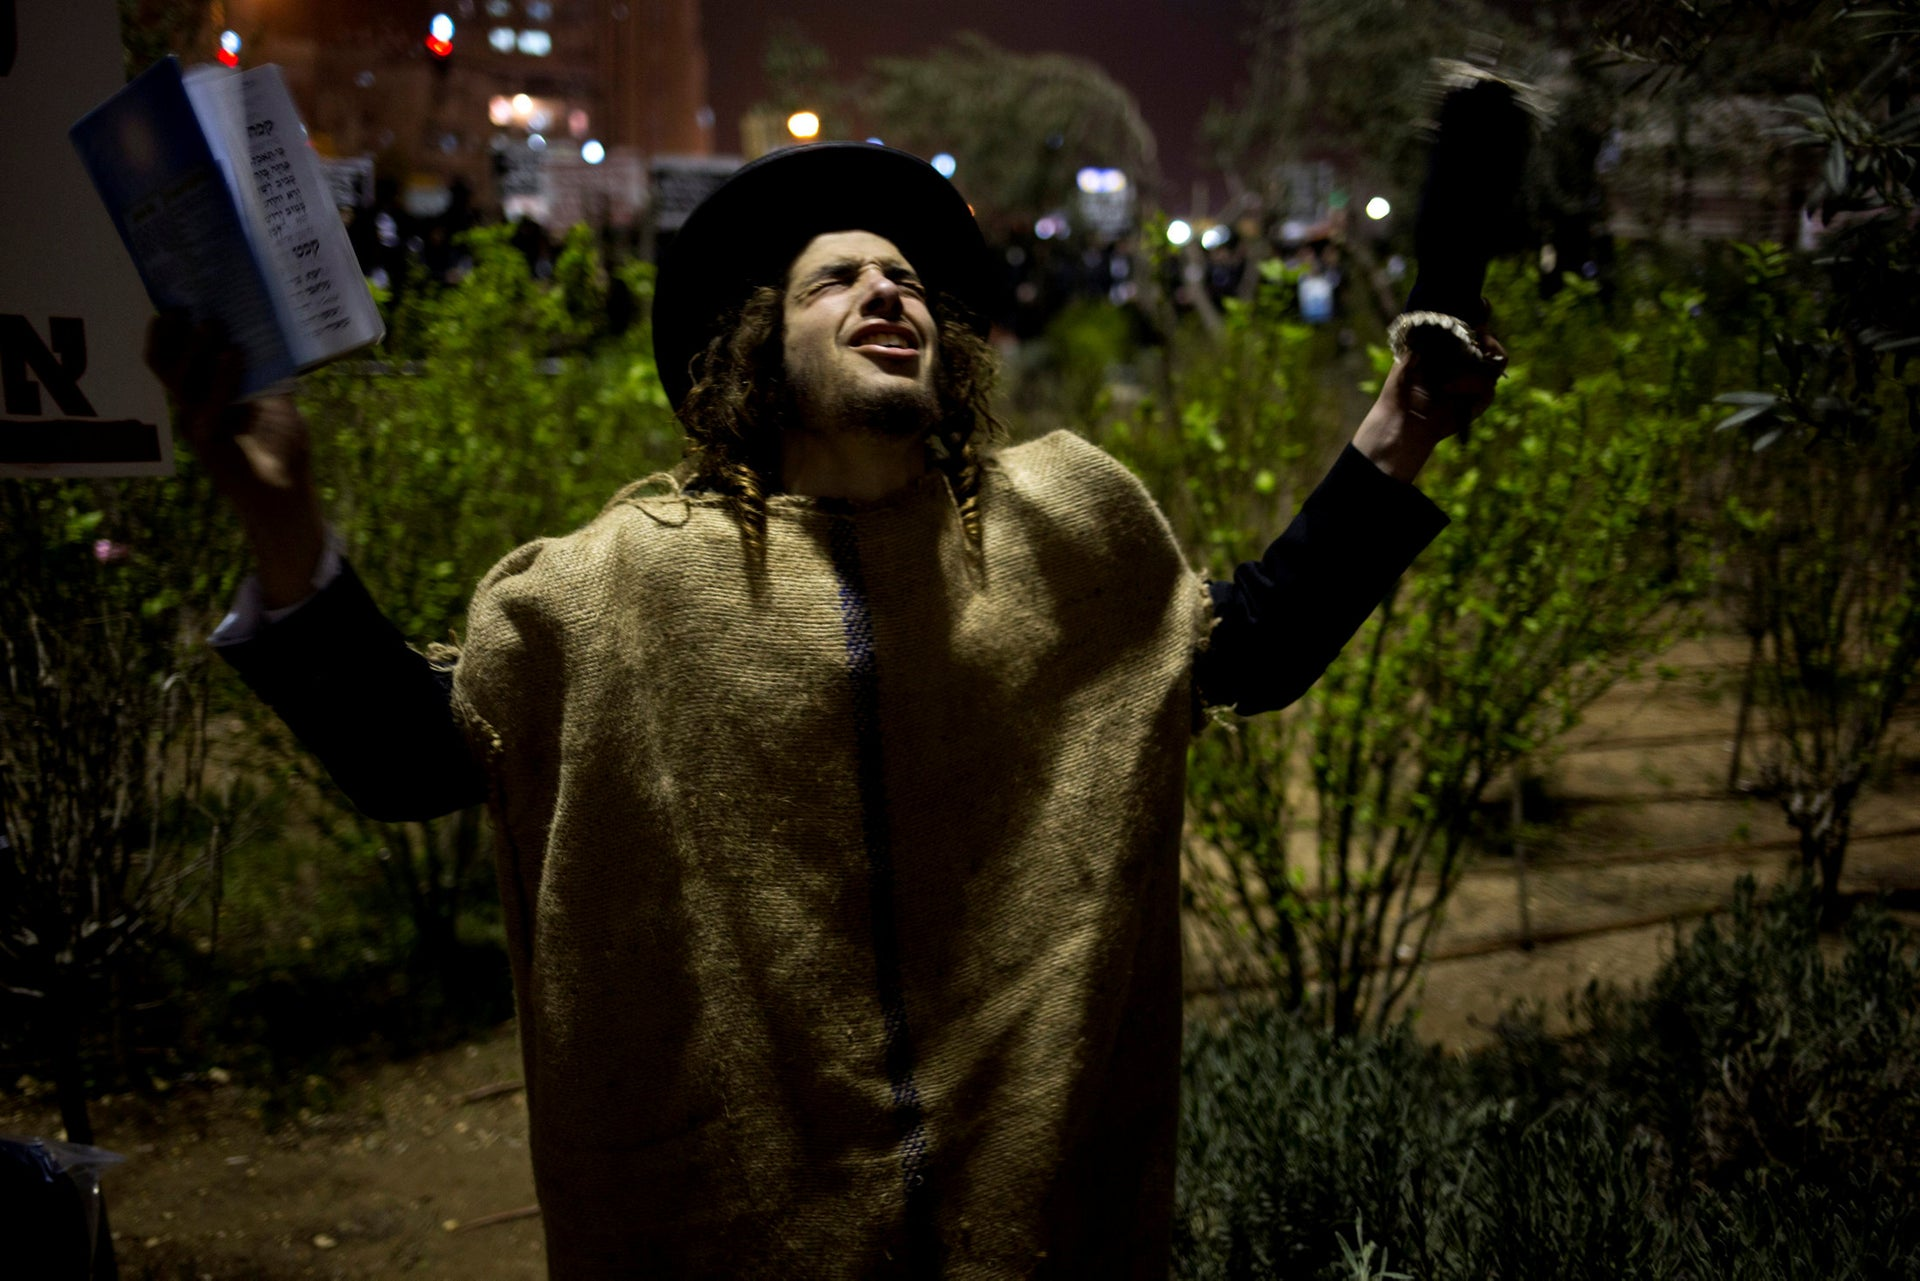 An ultra Orthodox Jew prays during a protest against the Israeli government's decision to draft the ultra Orthodox into military service, in Jerusalem on Wednesday, March 19, 2014.